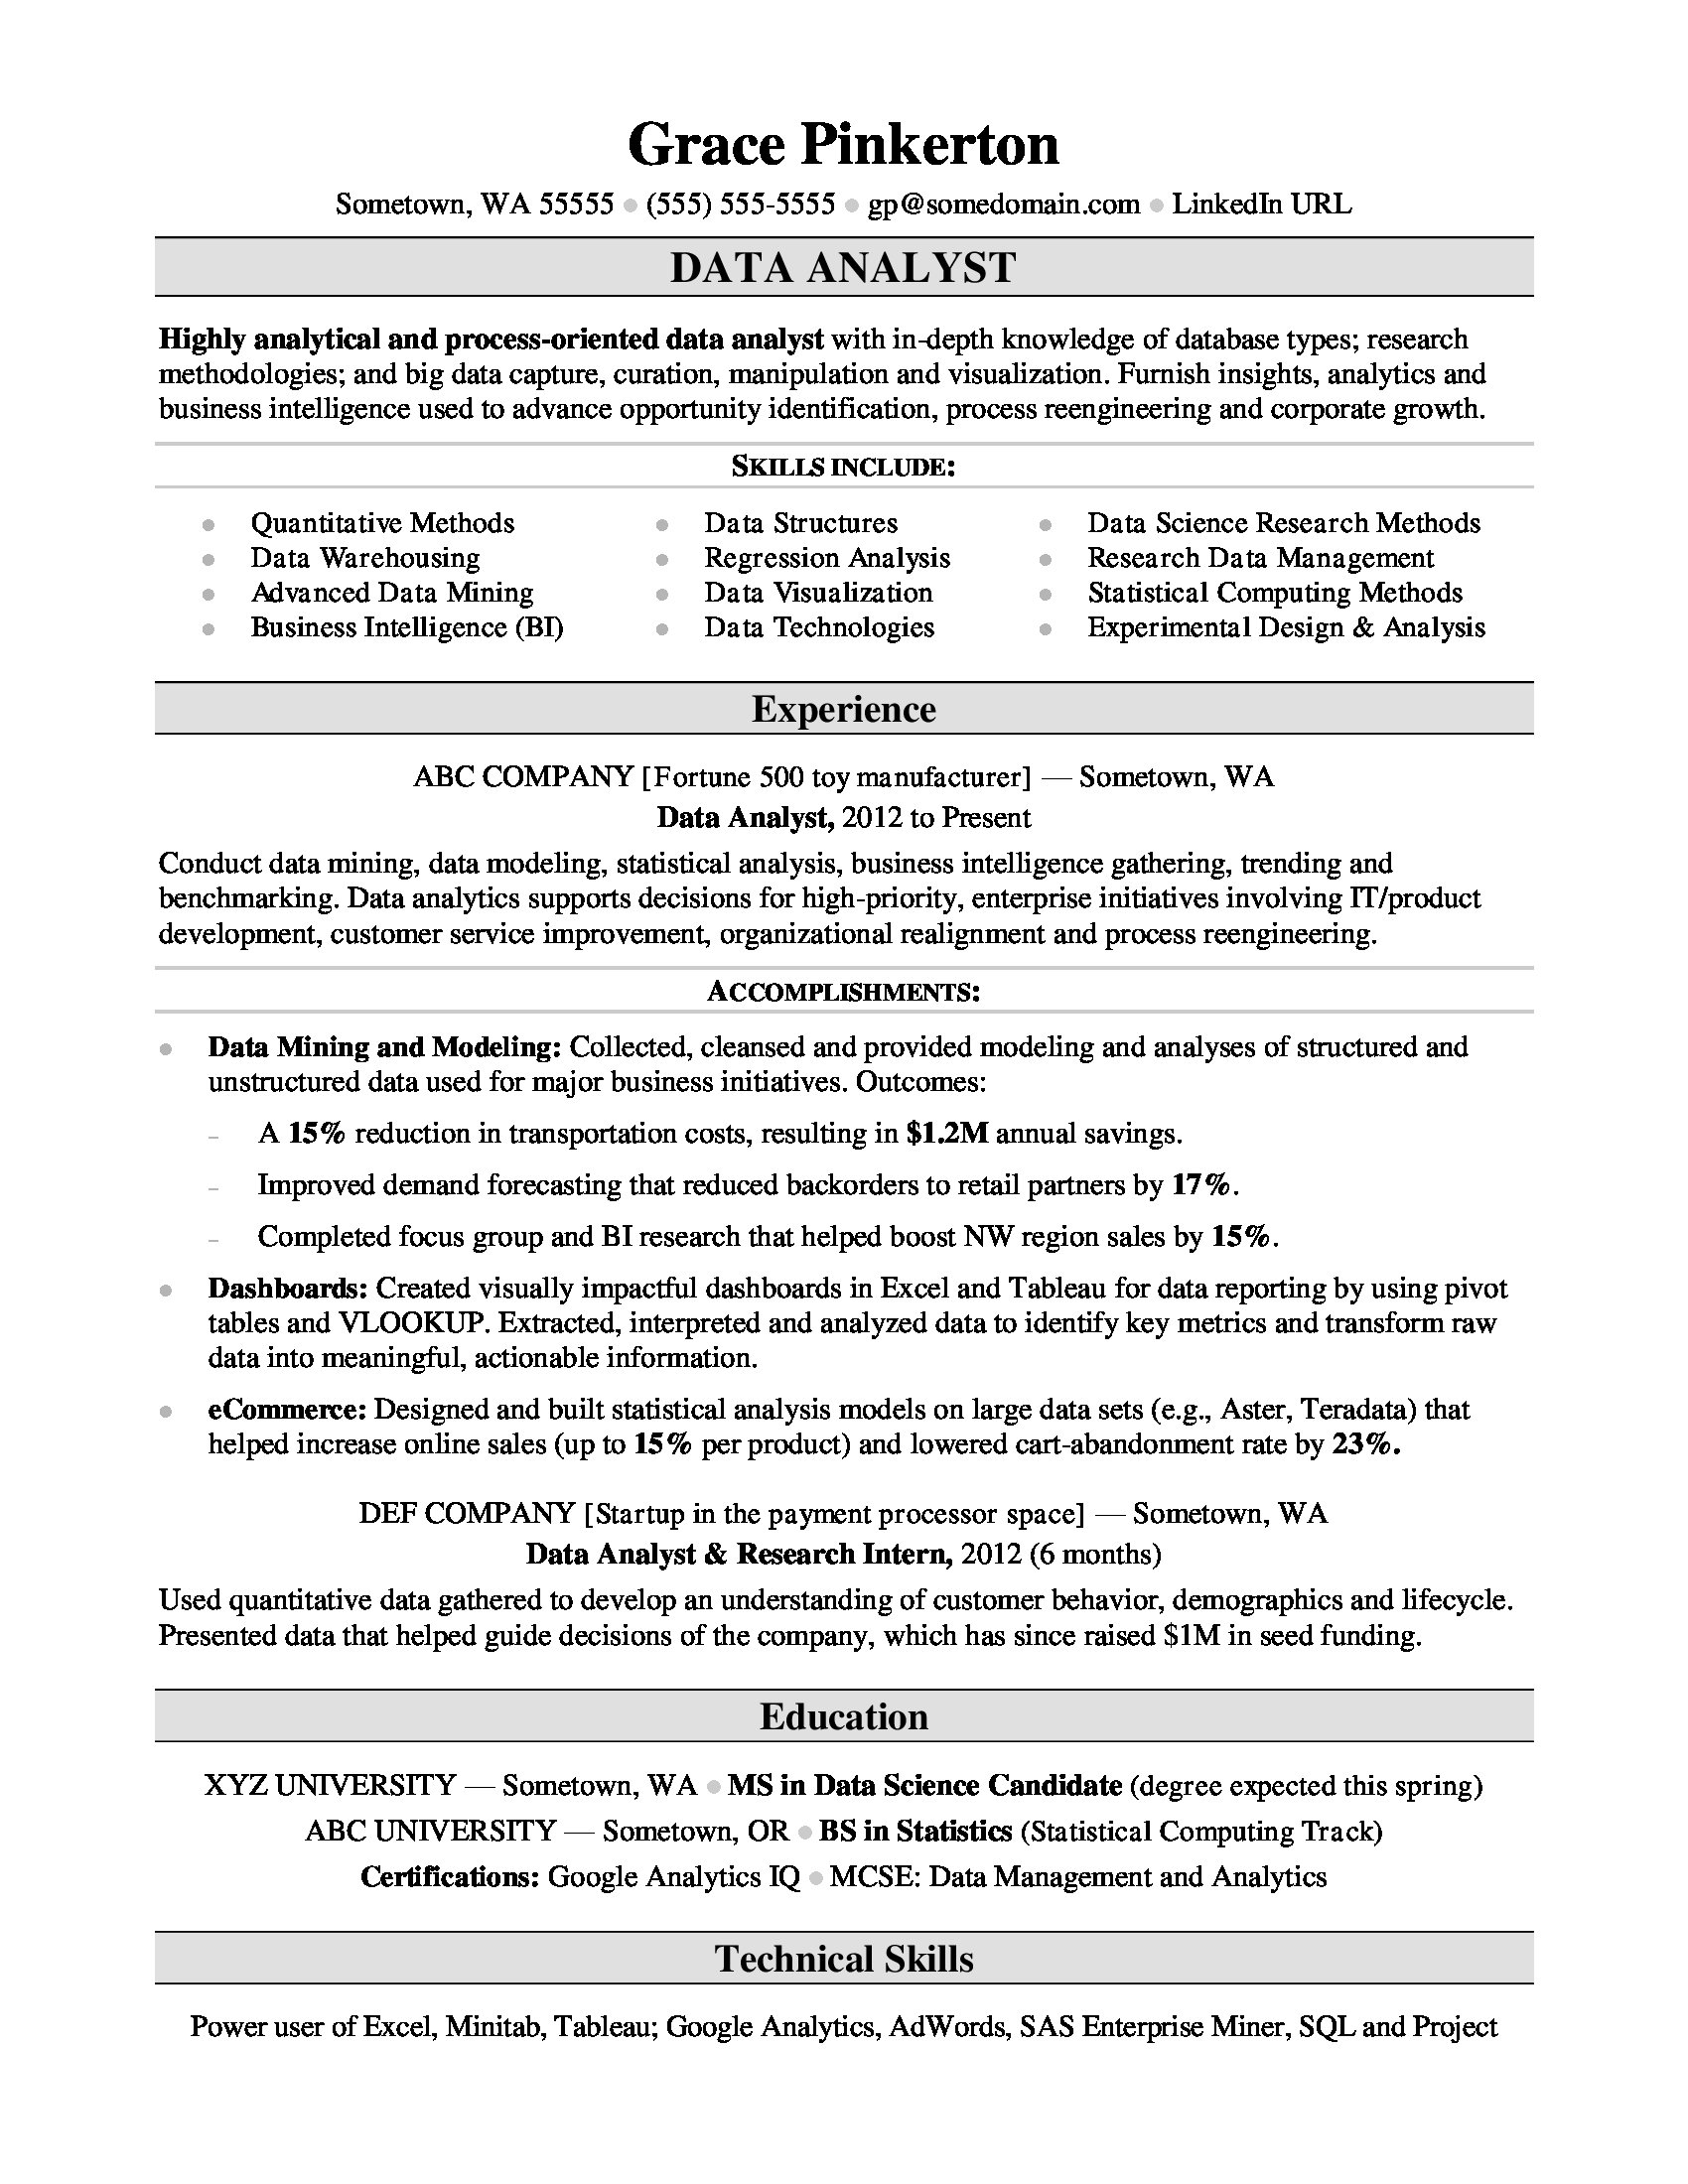 data analyst resume sample monster science dataanalyst payroll specialist example best Resume Data Science Resume Sample